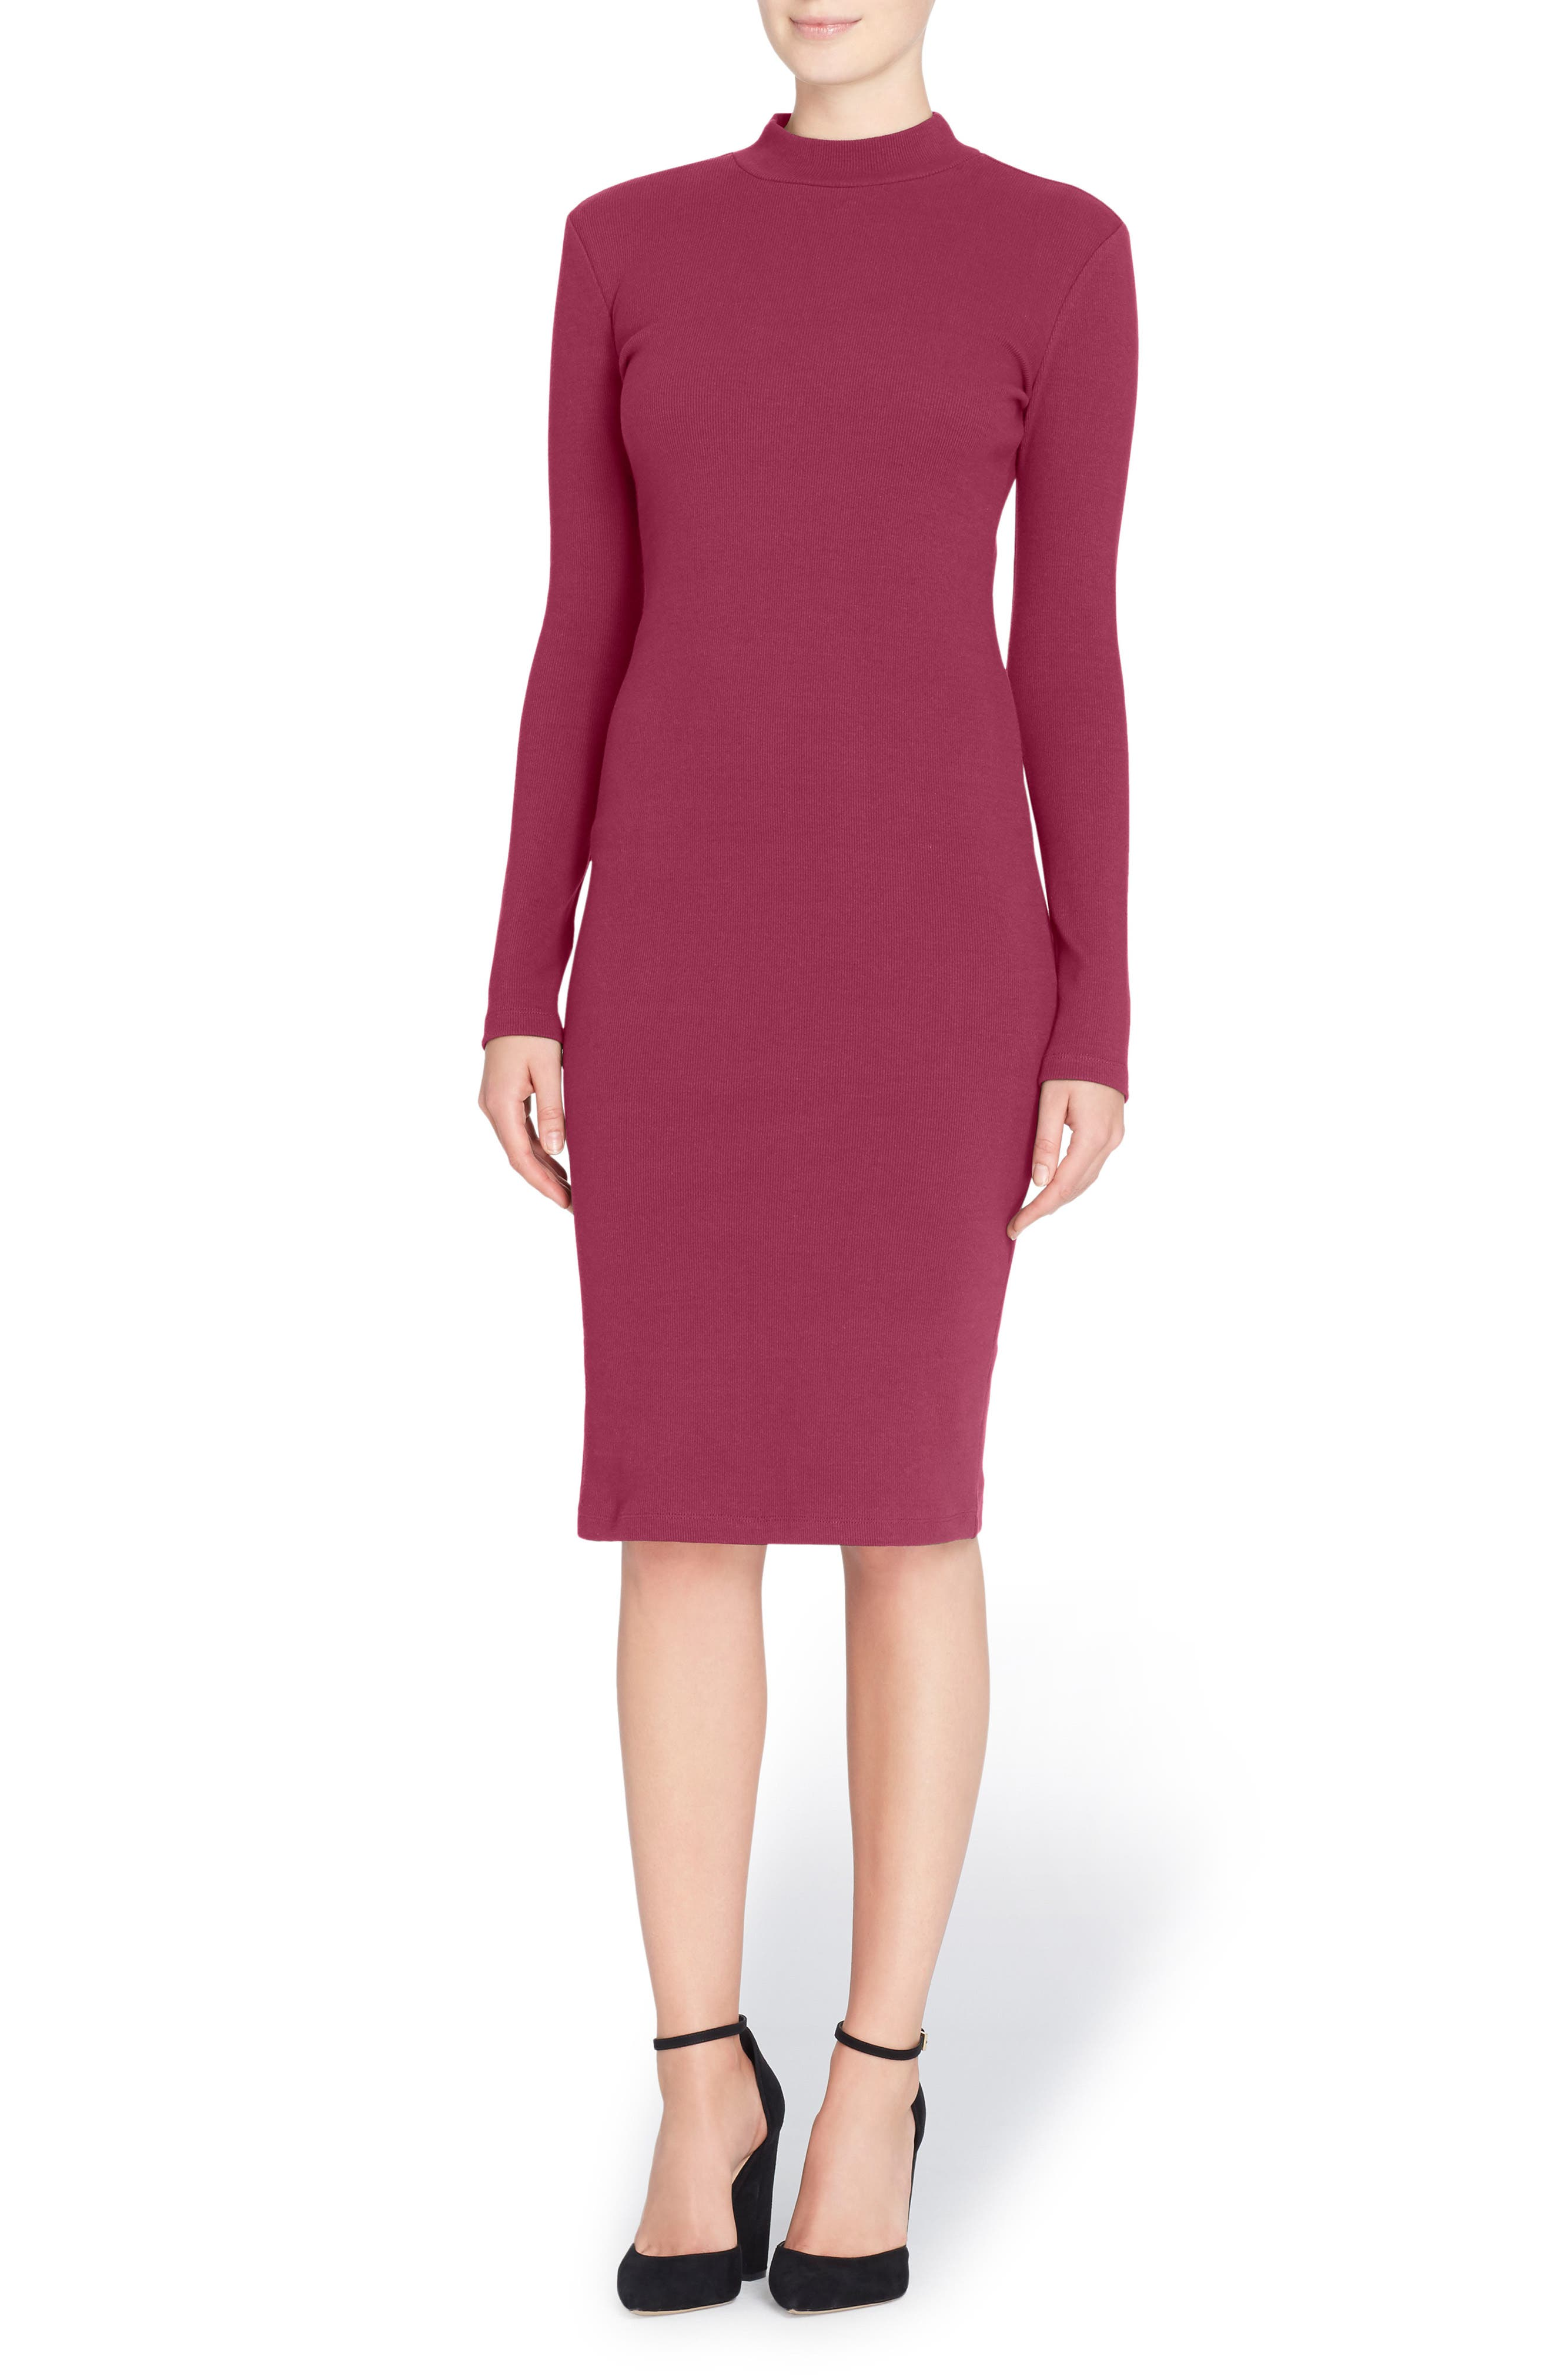 Alternate Image 1 Selected - Catherine Catherine Malandrino 'Kristiana' Knit Midi Dress